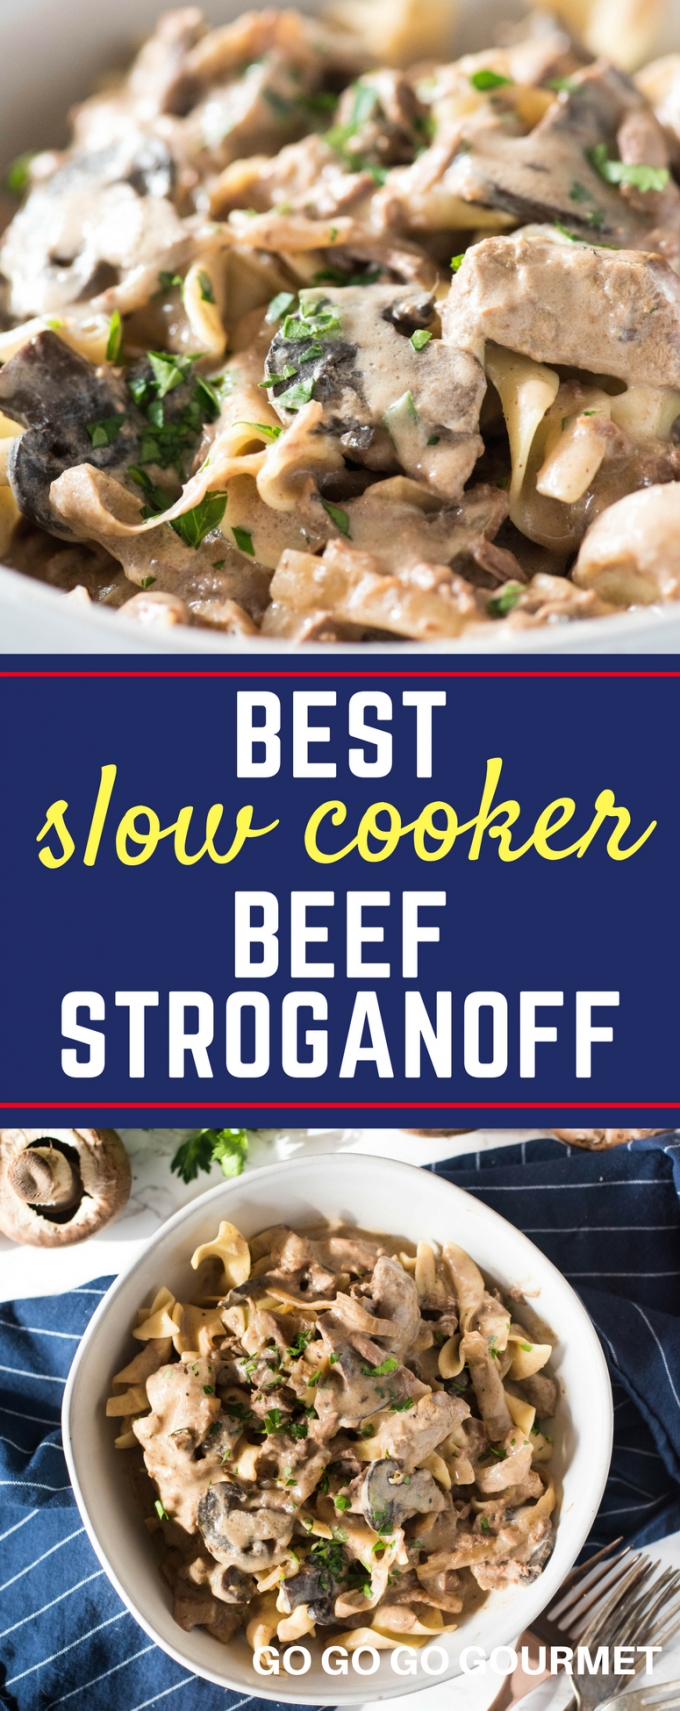 This slow cooker beef stroganoff recipe is the best! So easy to make, full of flavor and absolutely fork tender. No cream soups called for, but there's an adaptation if you want to use them! #gogogogourmet #beef #slowcooker #beefstroganoff #crockpot via @gogogogourmet